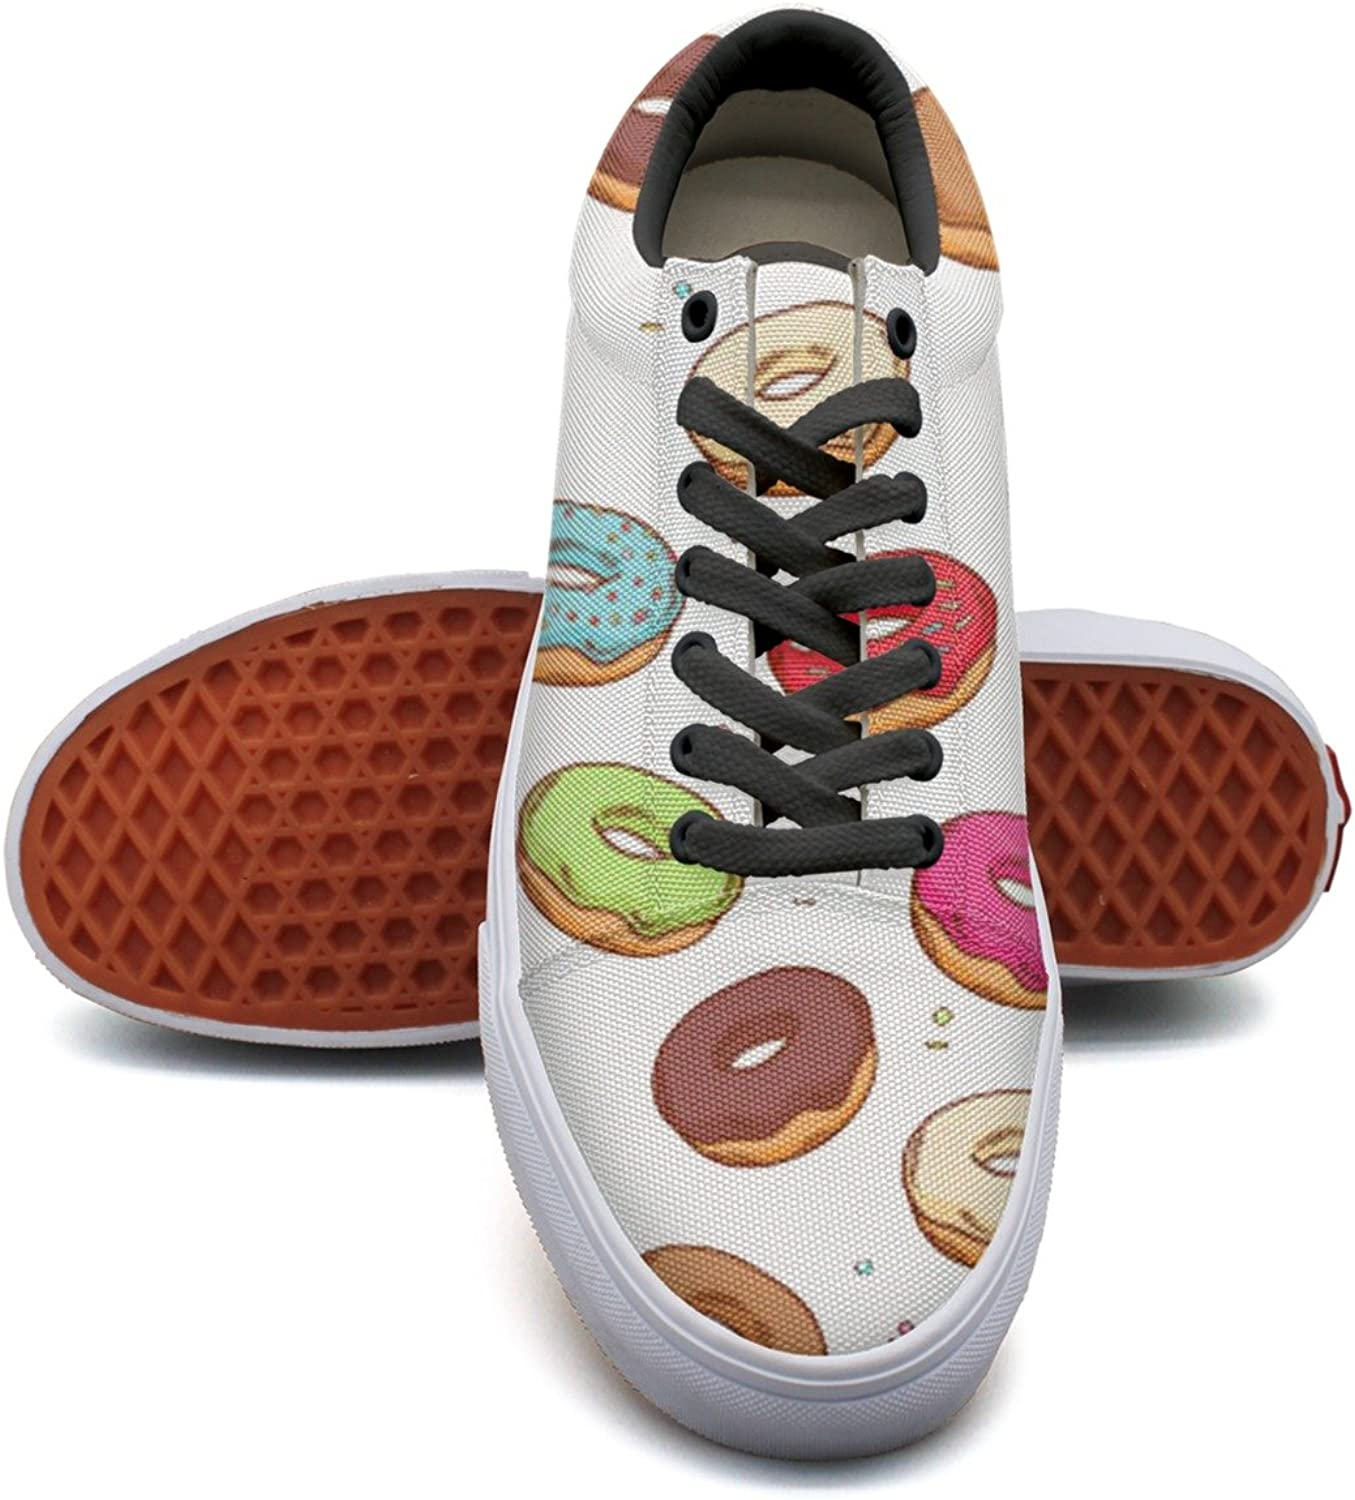 Donut With Sprinkles Women's Casual shoes Sneakers Flat Lo-Top New Trainers